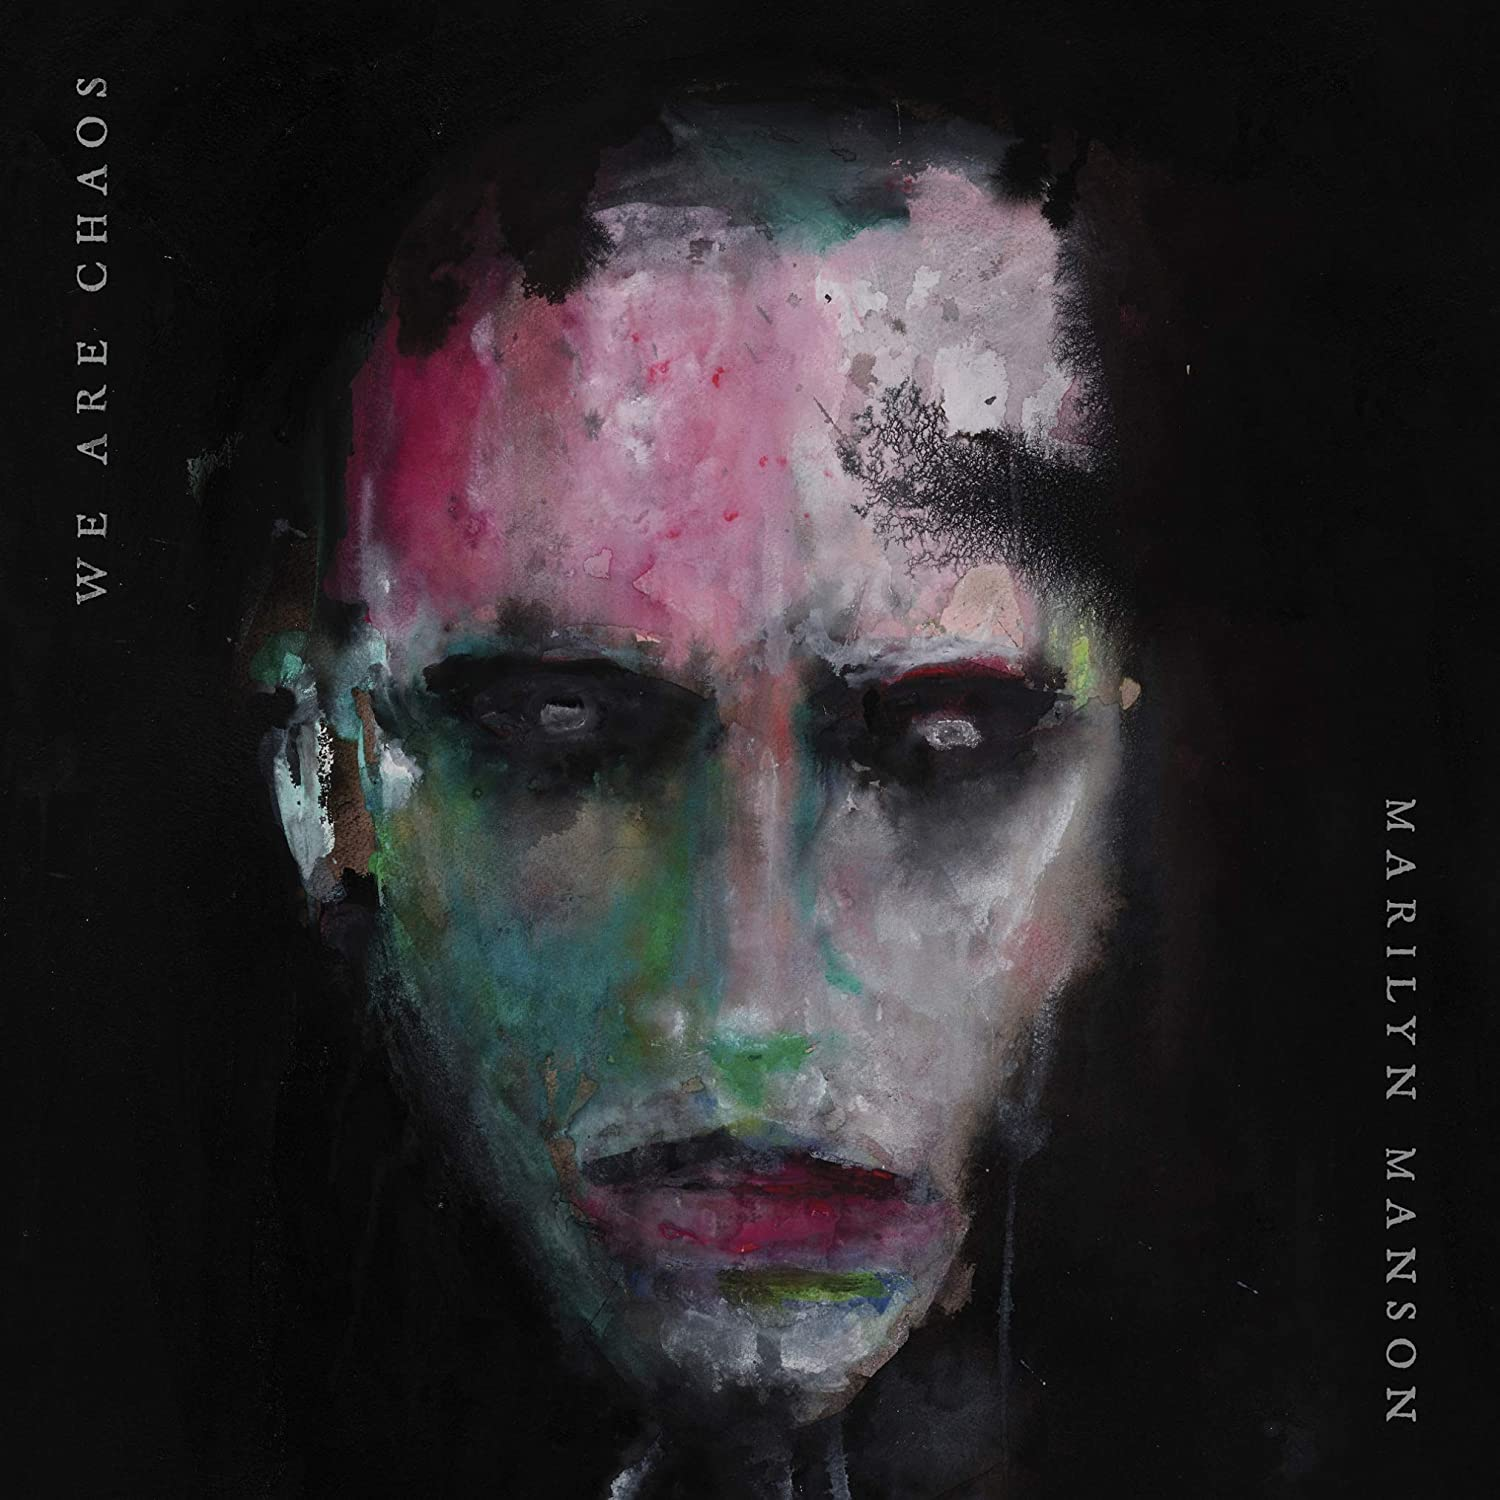 Copertina Vinile 33 giri We Are Chaos di Marilyn Manson